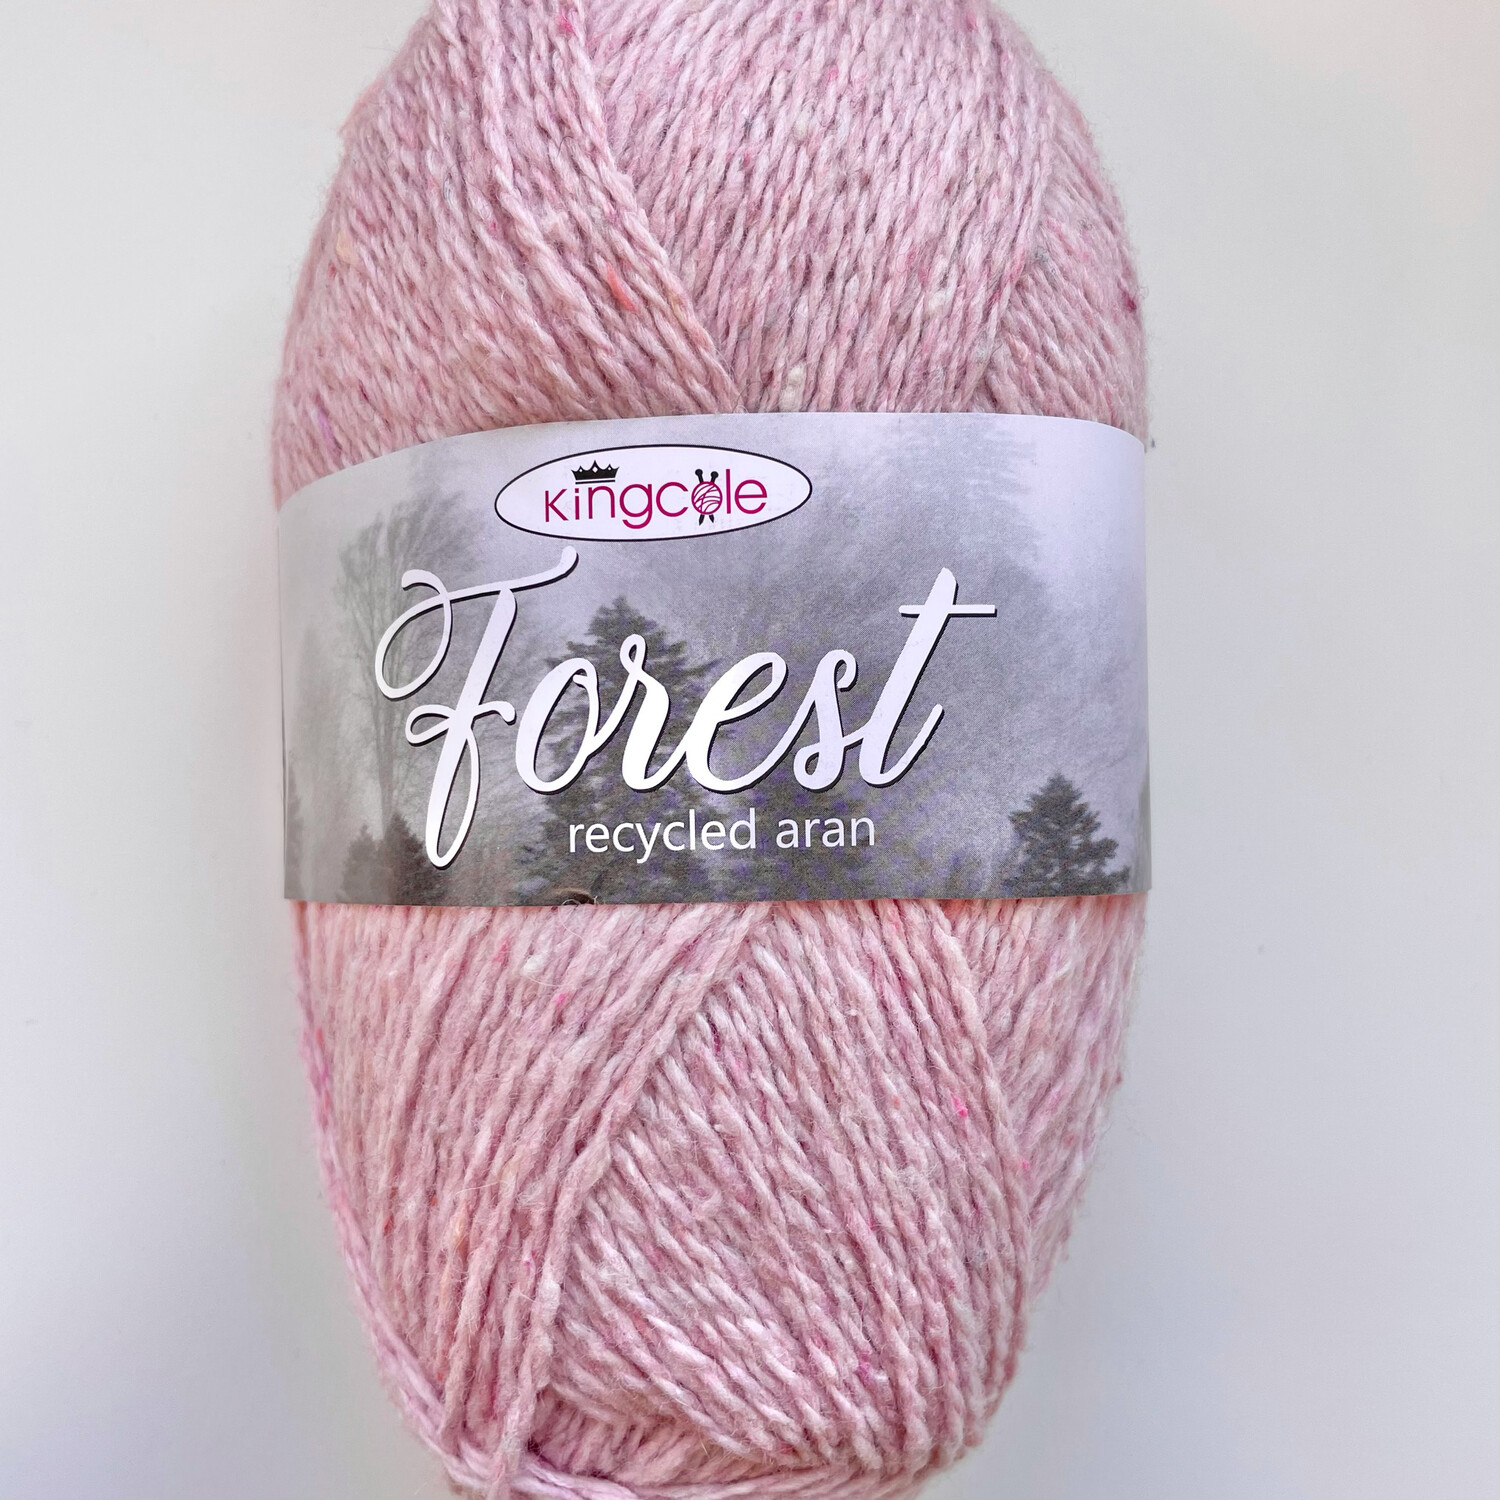 King Cole Forest Aran 100% Recycled Yarn containing 35% Wool - Wyre Forest